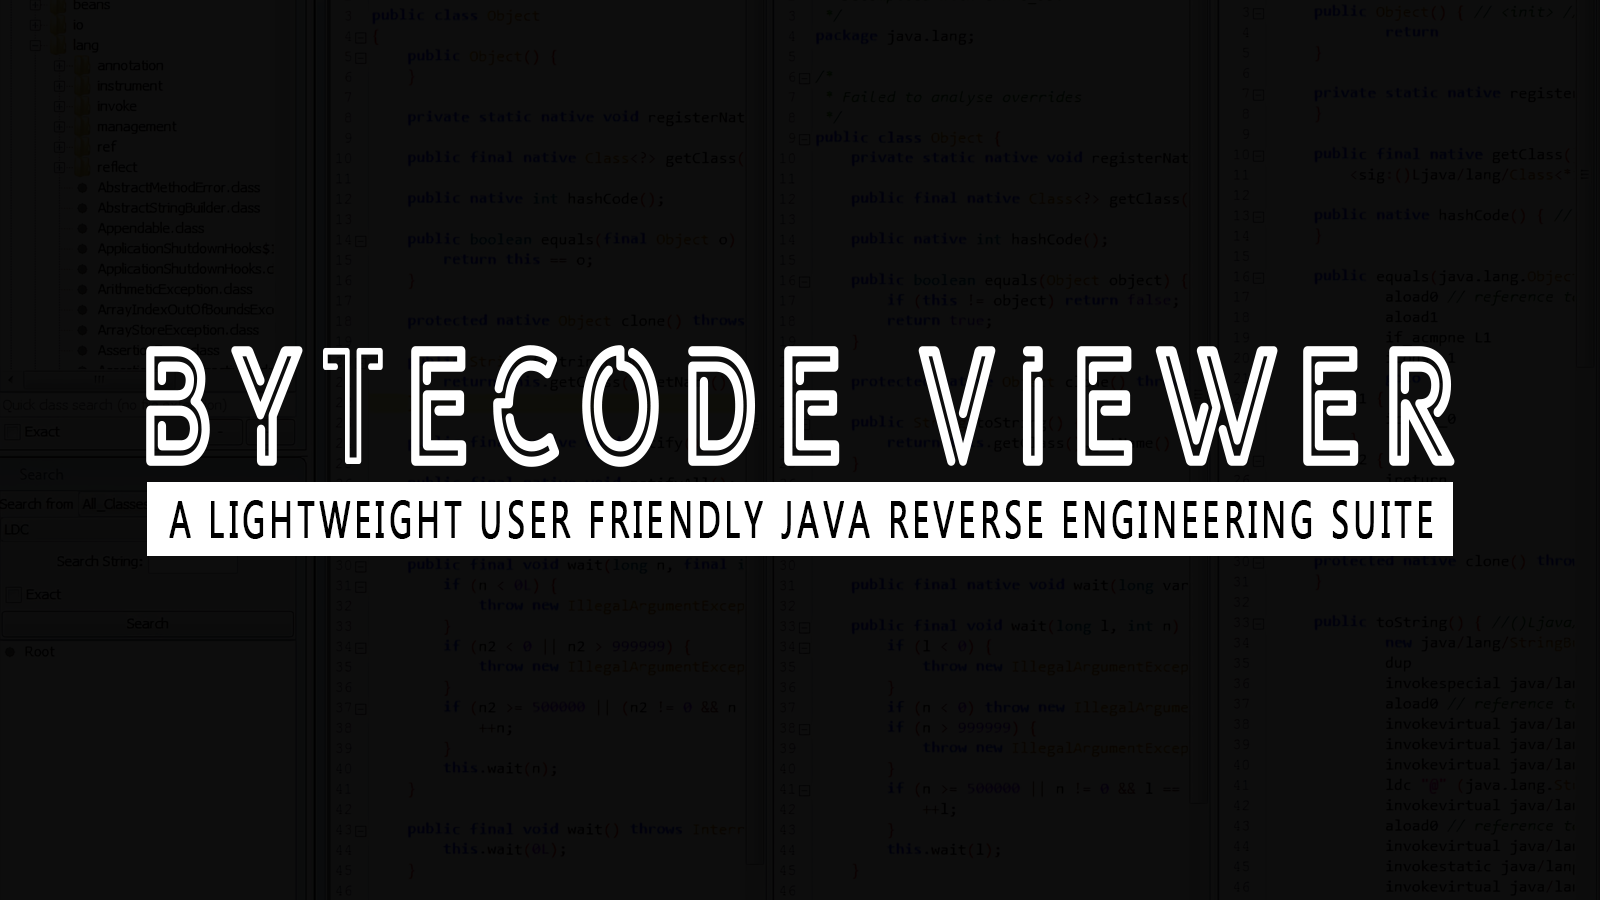 Bytecode Viewer - A Lightweight User Friendly Java Reverse Engineering Suite